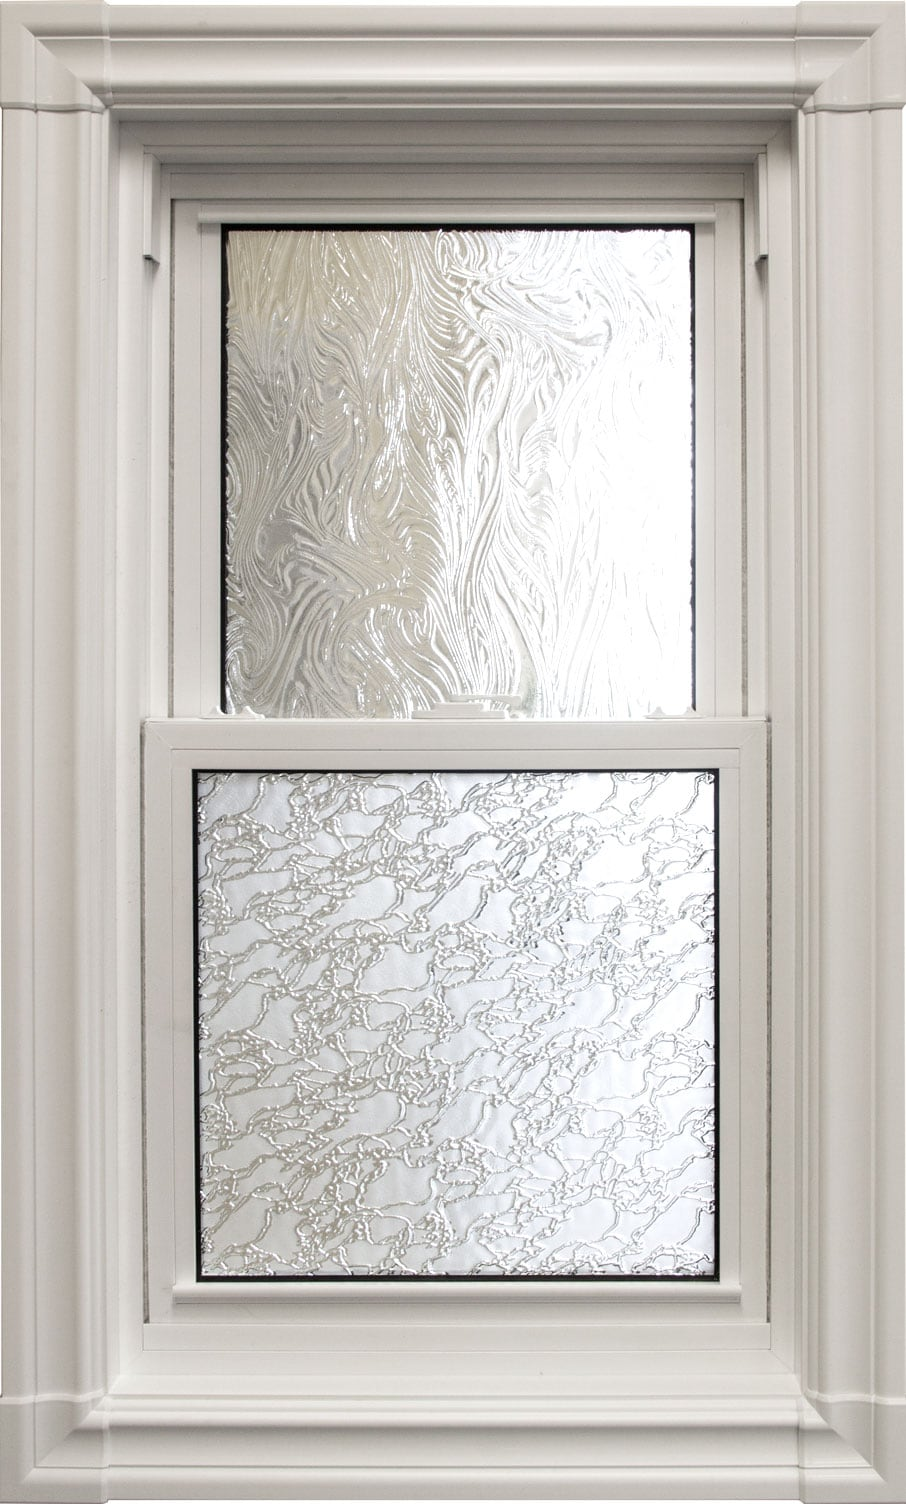 Double Hung Window Security : Double hung tilt windows northview and doors